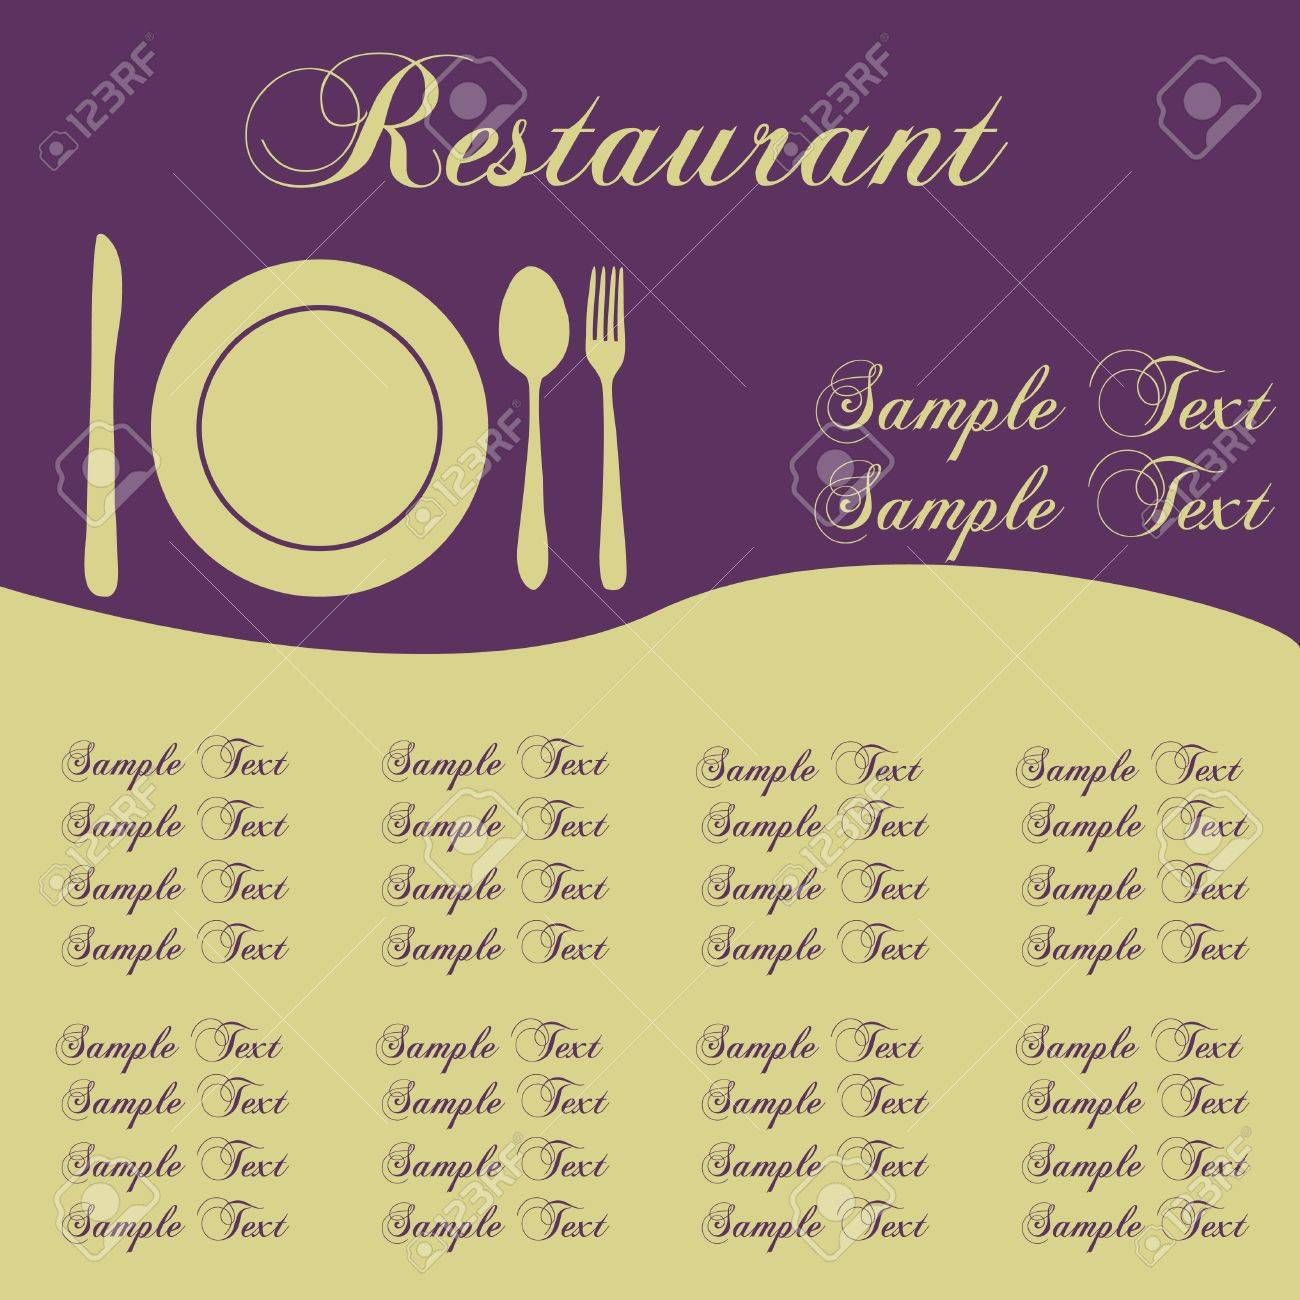 image of a colorful purple sample restaurant menu with editable